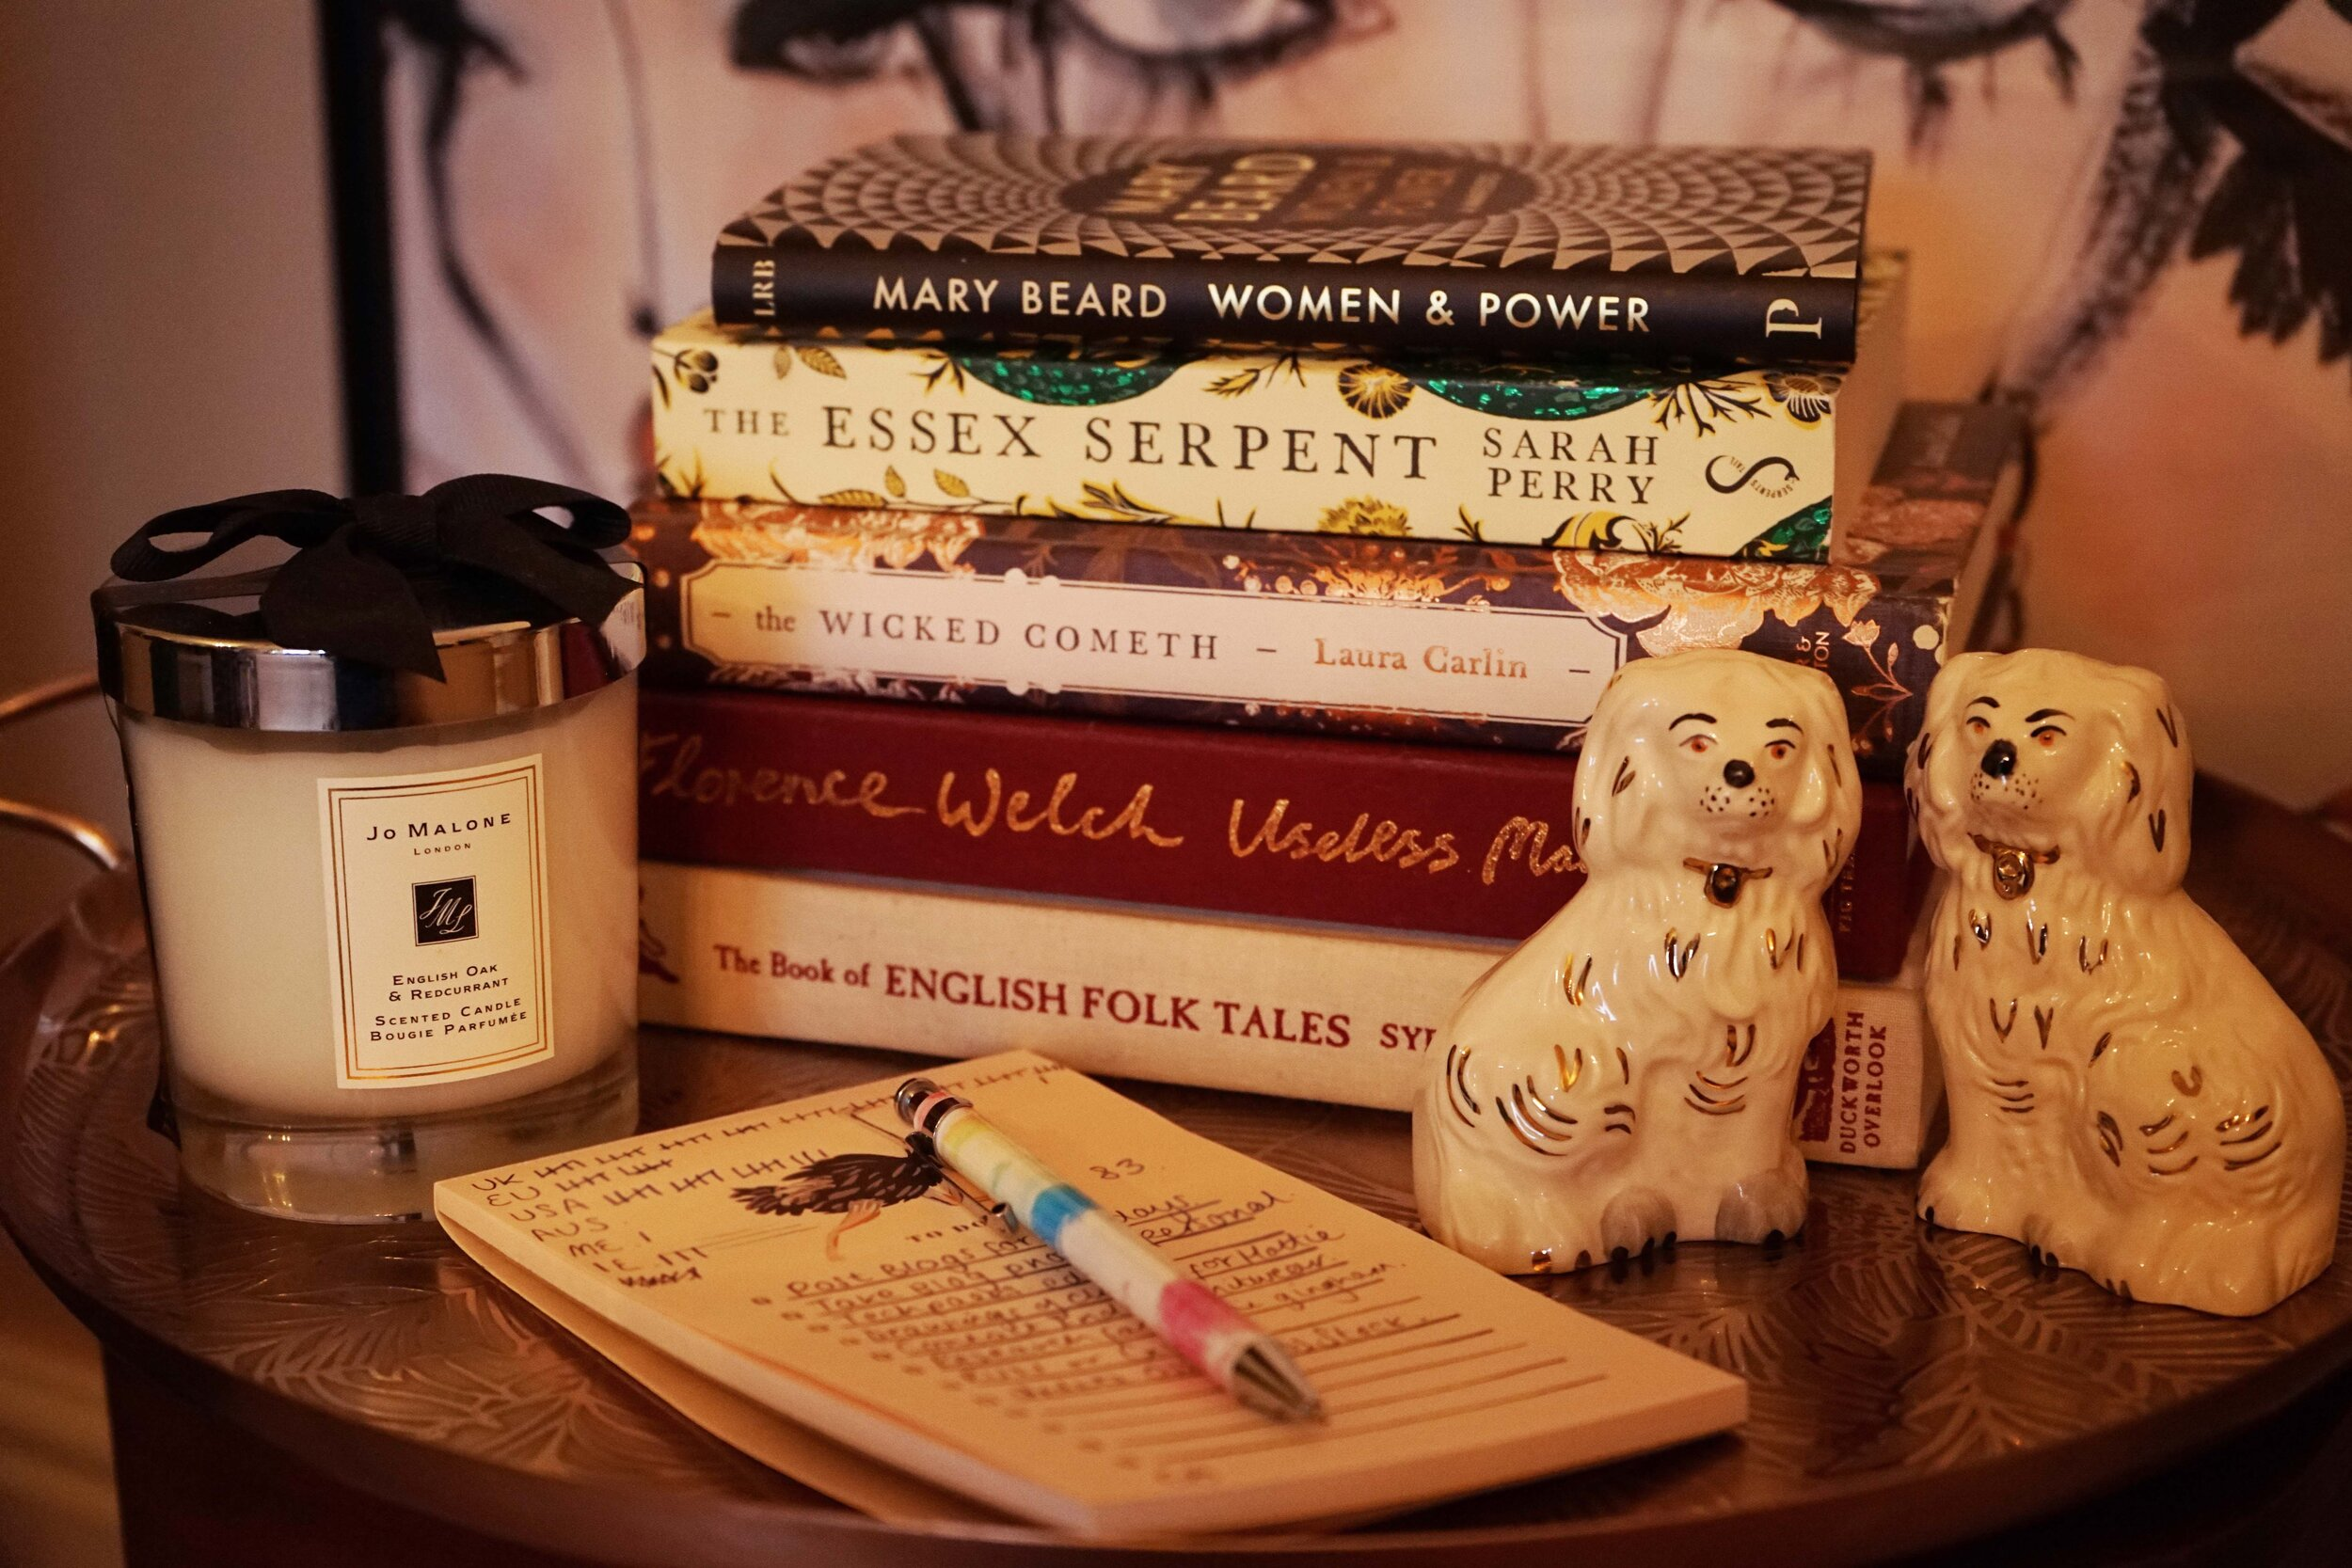 My coffee table is usually stacked with books yet to read, notes, favourite candles and my vintage Royal Doulton dogs, a gift from my sister.